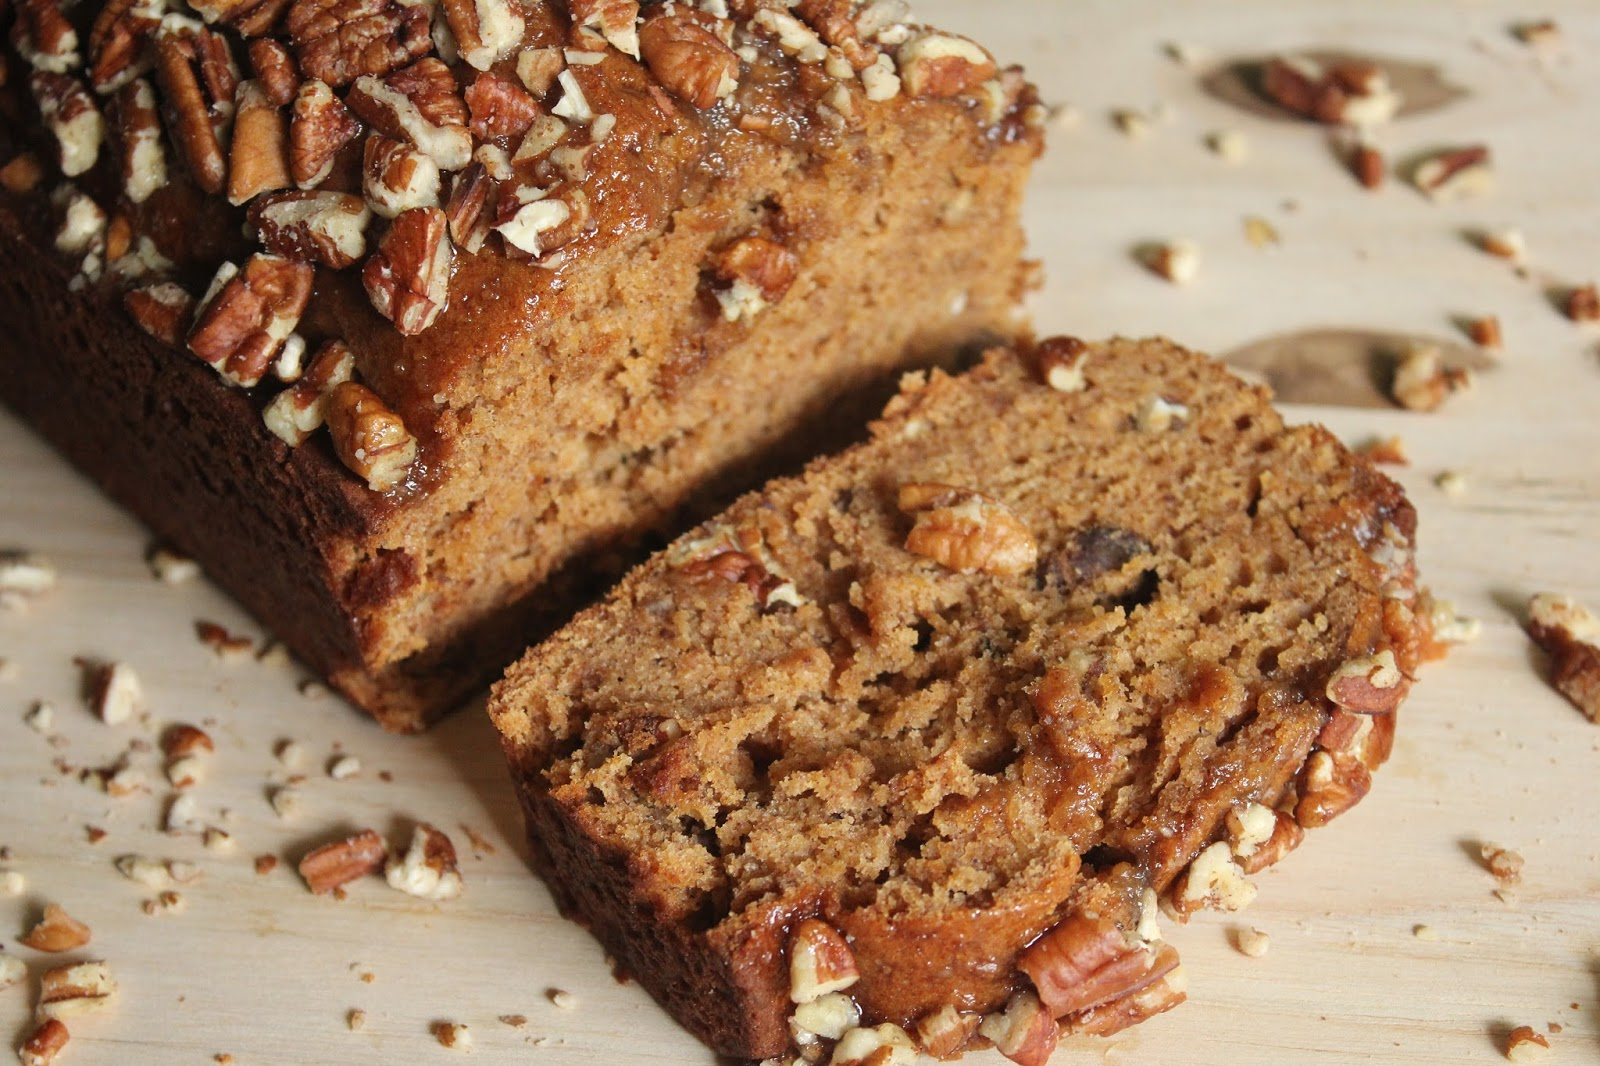 Holiday Cookbook - Thanksgiving Dessert Recipe: Pumpkin Pecan Bread with Vanilla & Brown Sugar Glaze